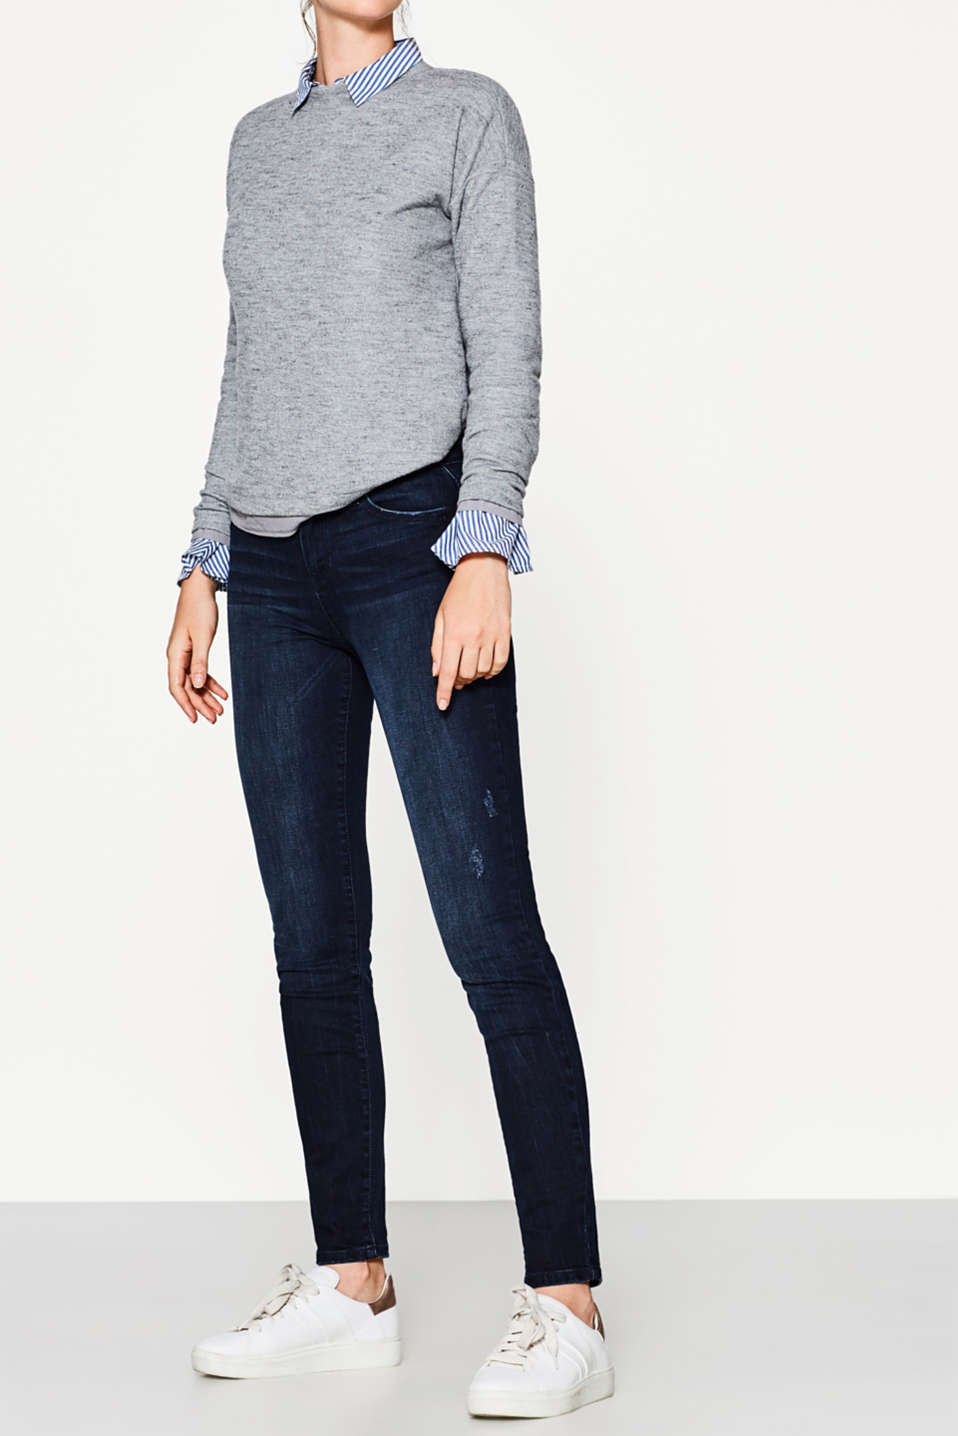 Esprit - Dark stretch jeans with vintage effects